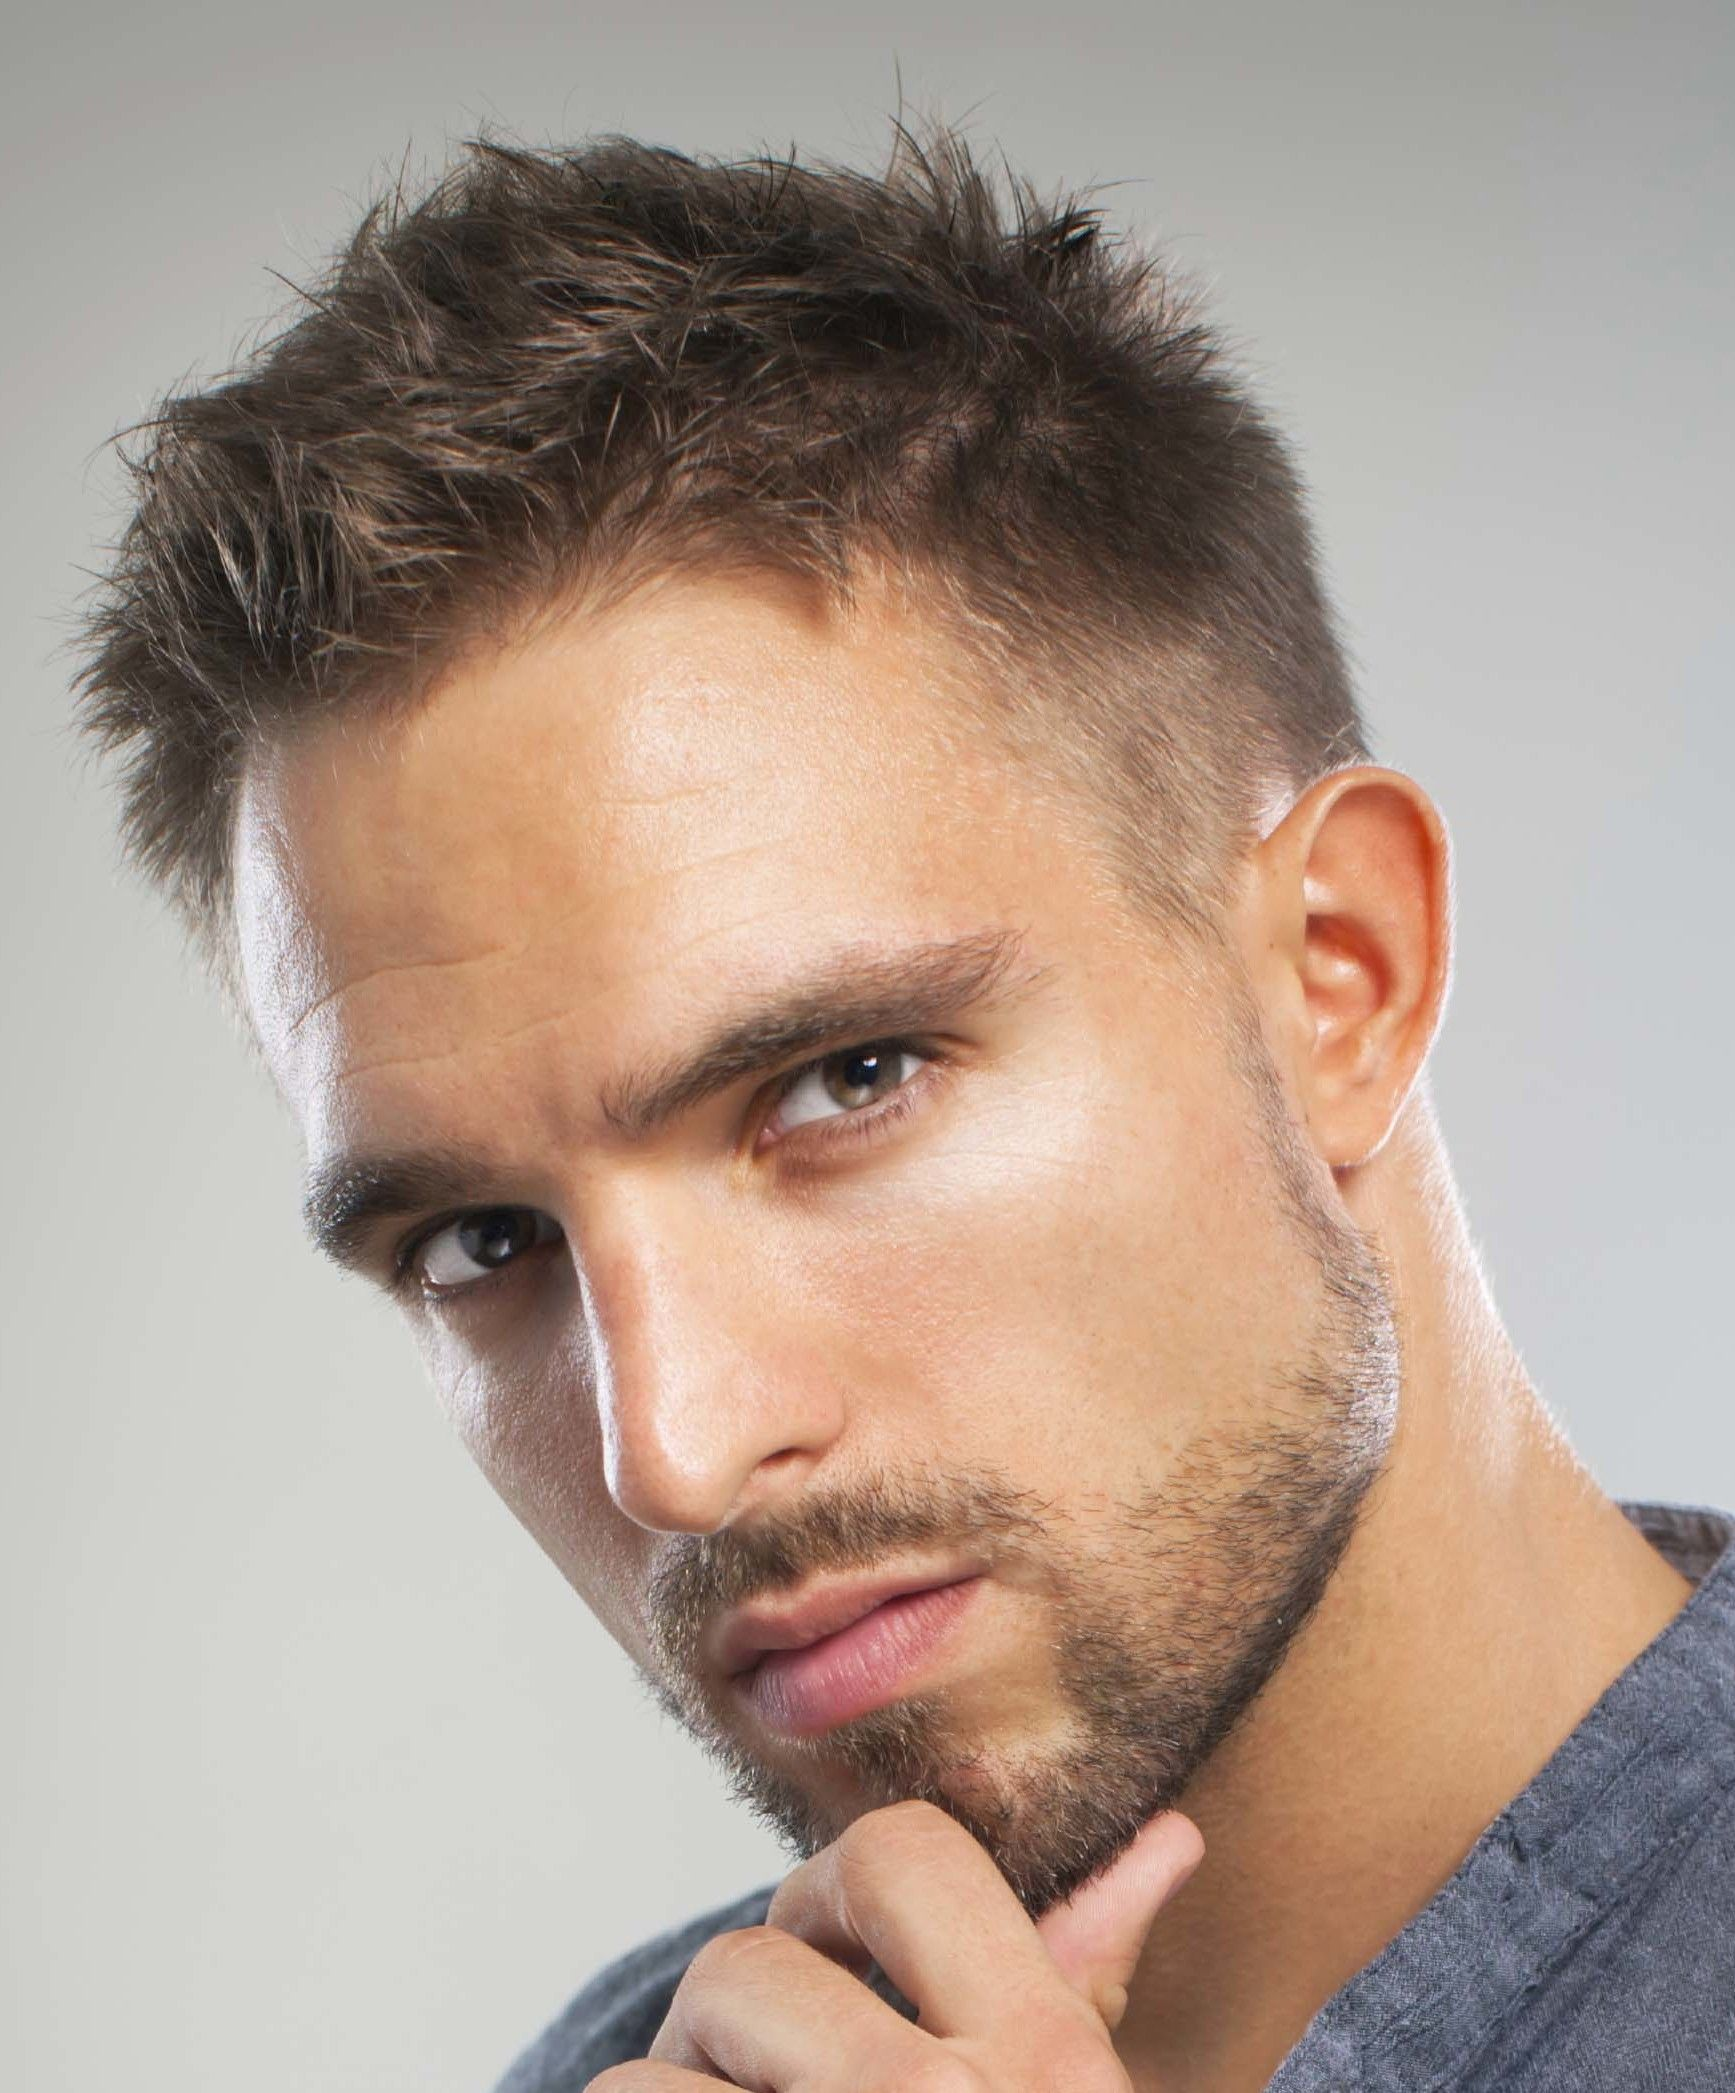 100 Best Haircuts And Hairstyles For Men 2020 Update Kapsels Voor Mannen Met Dun Haar Mannen Kapsels Dun Haar Heren Kapsel